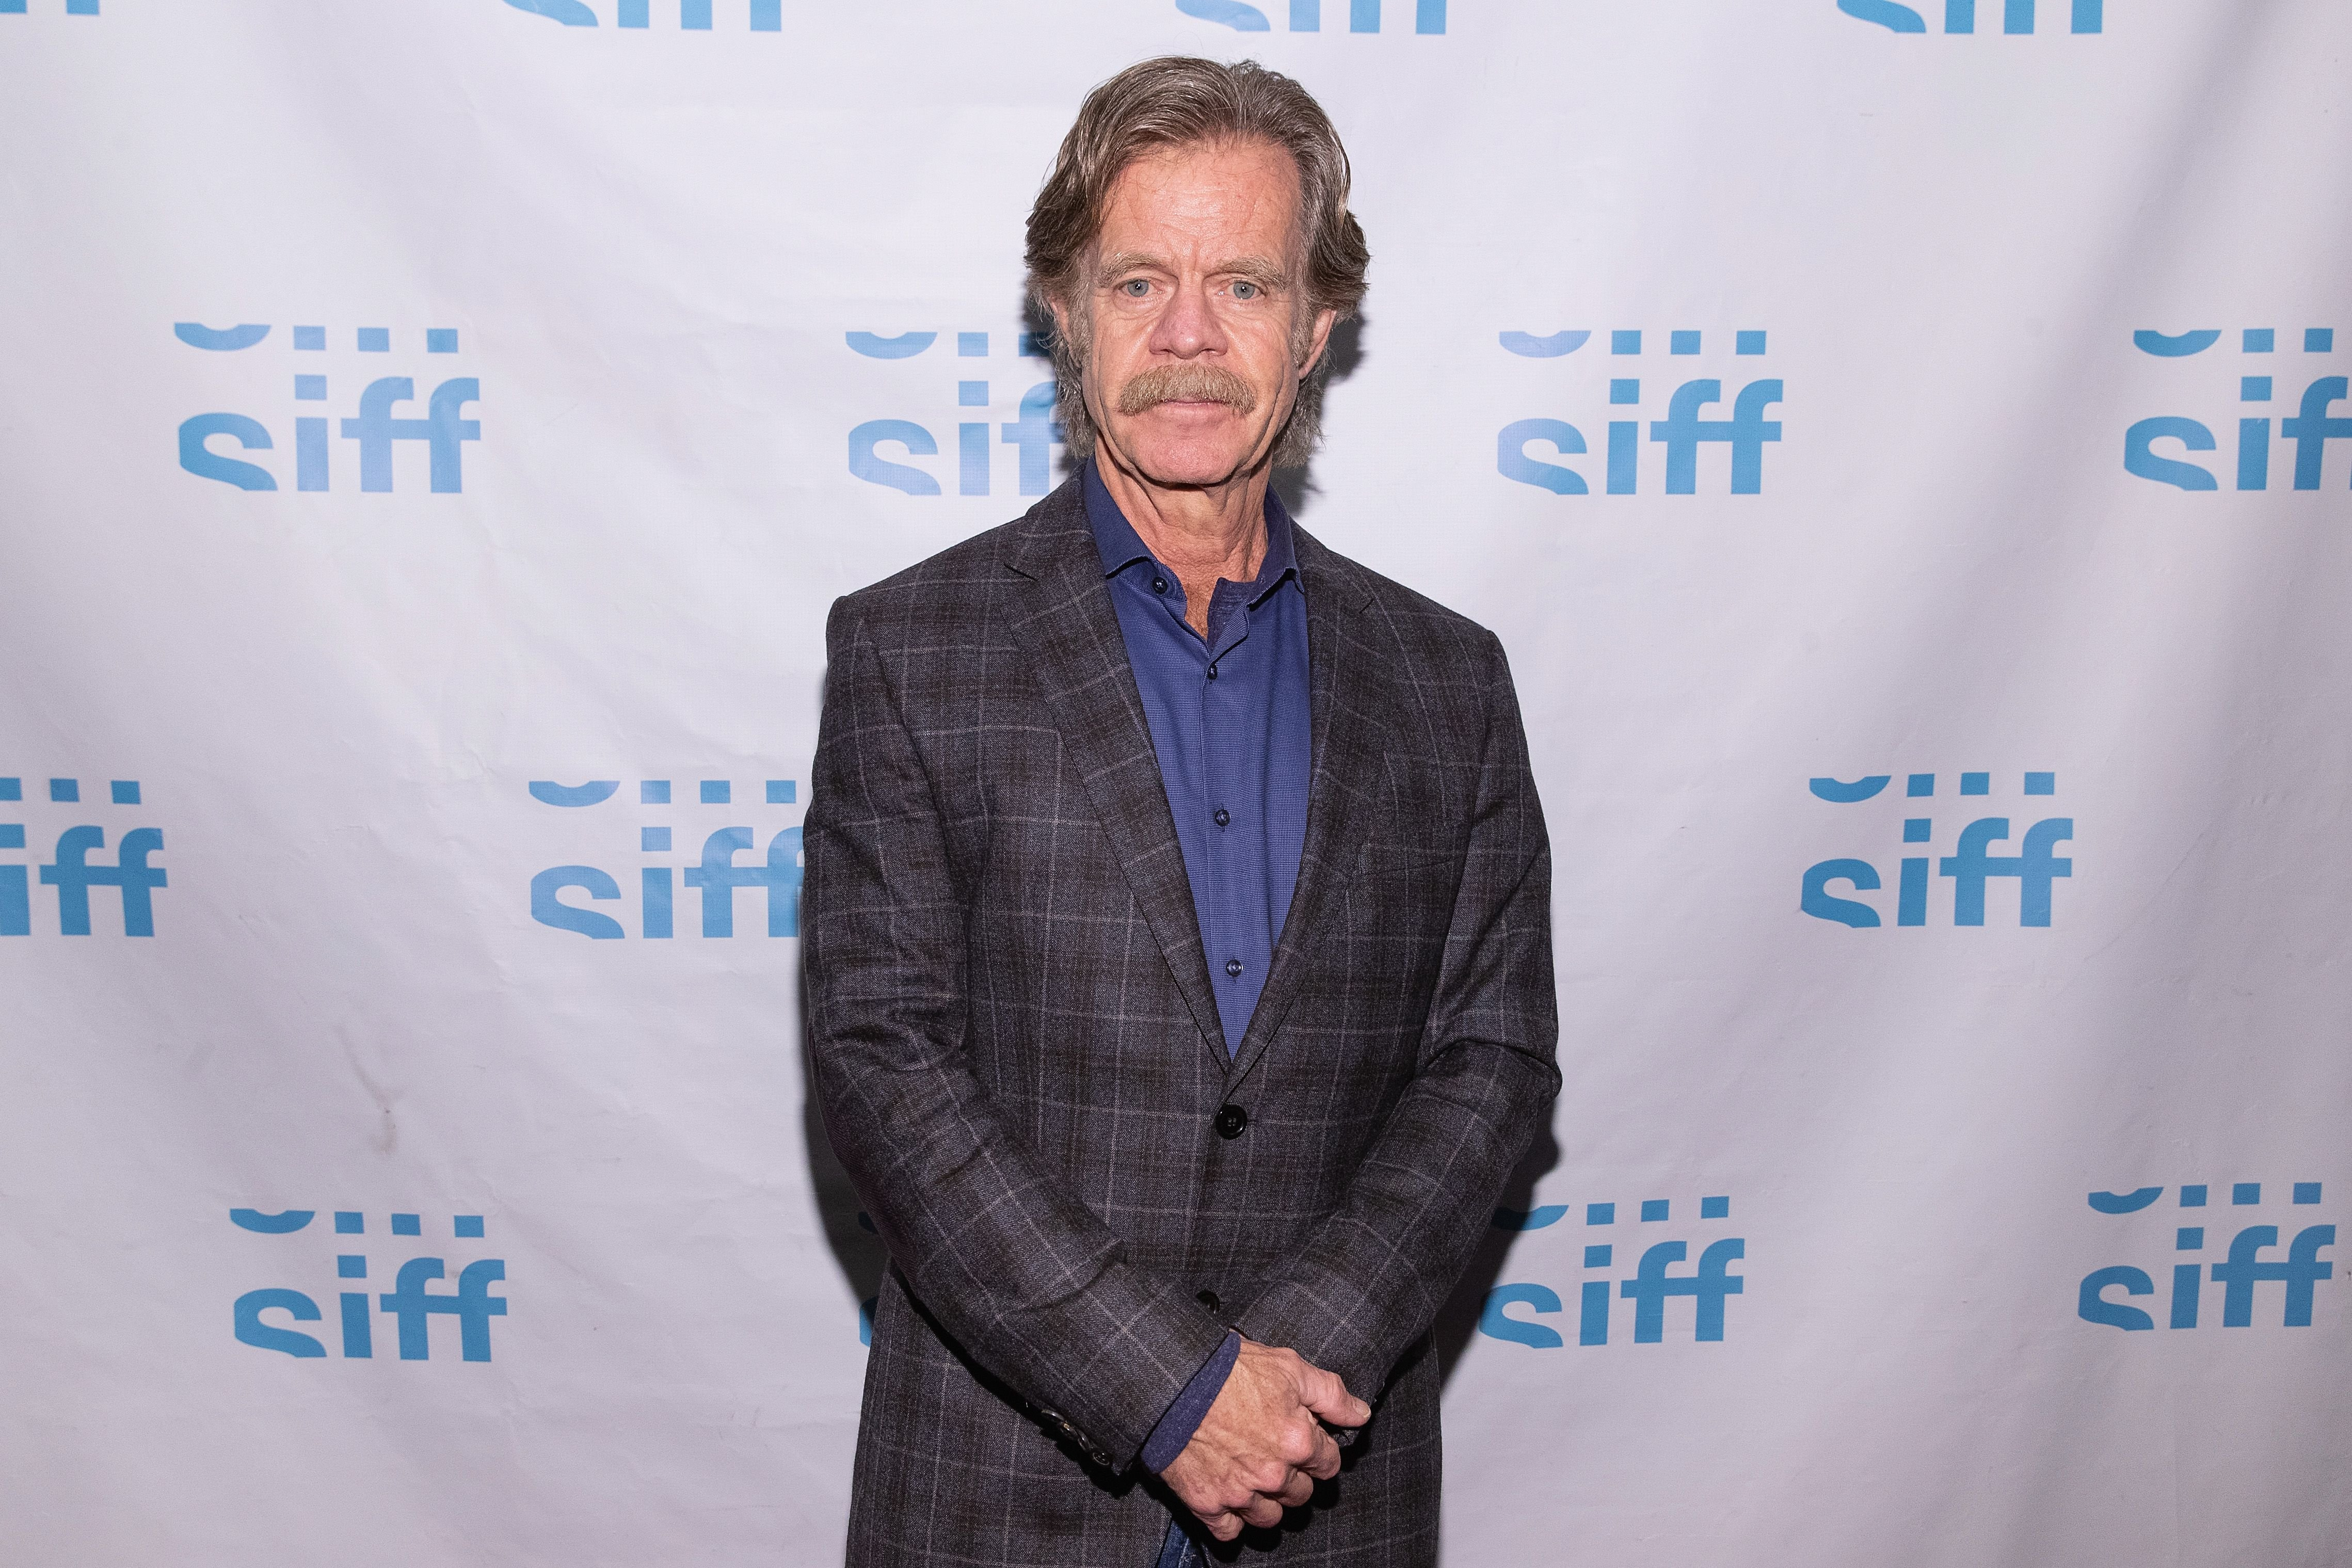 """William H. Macy attends a screening of the film """"Stealing Cars"""" / Getty Images"""